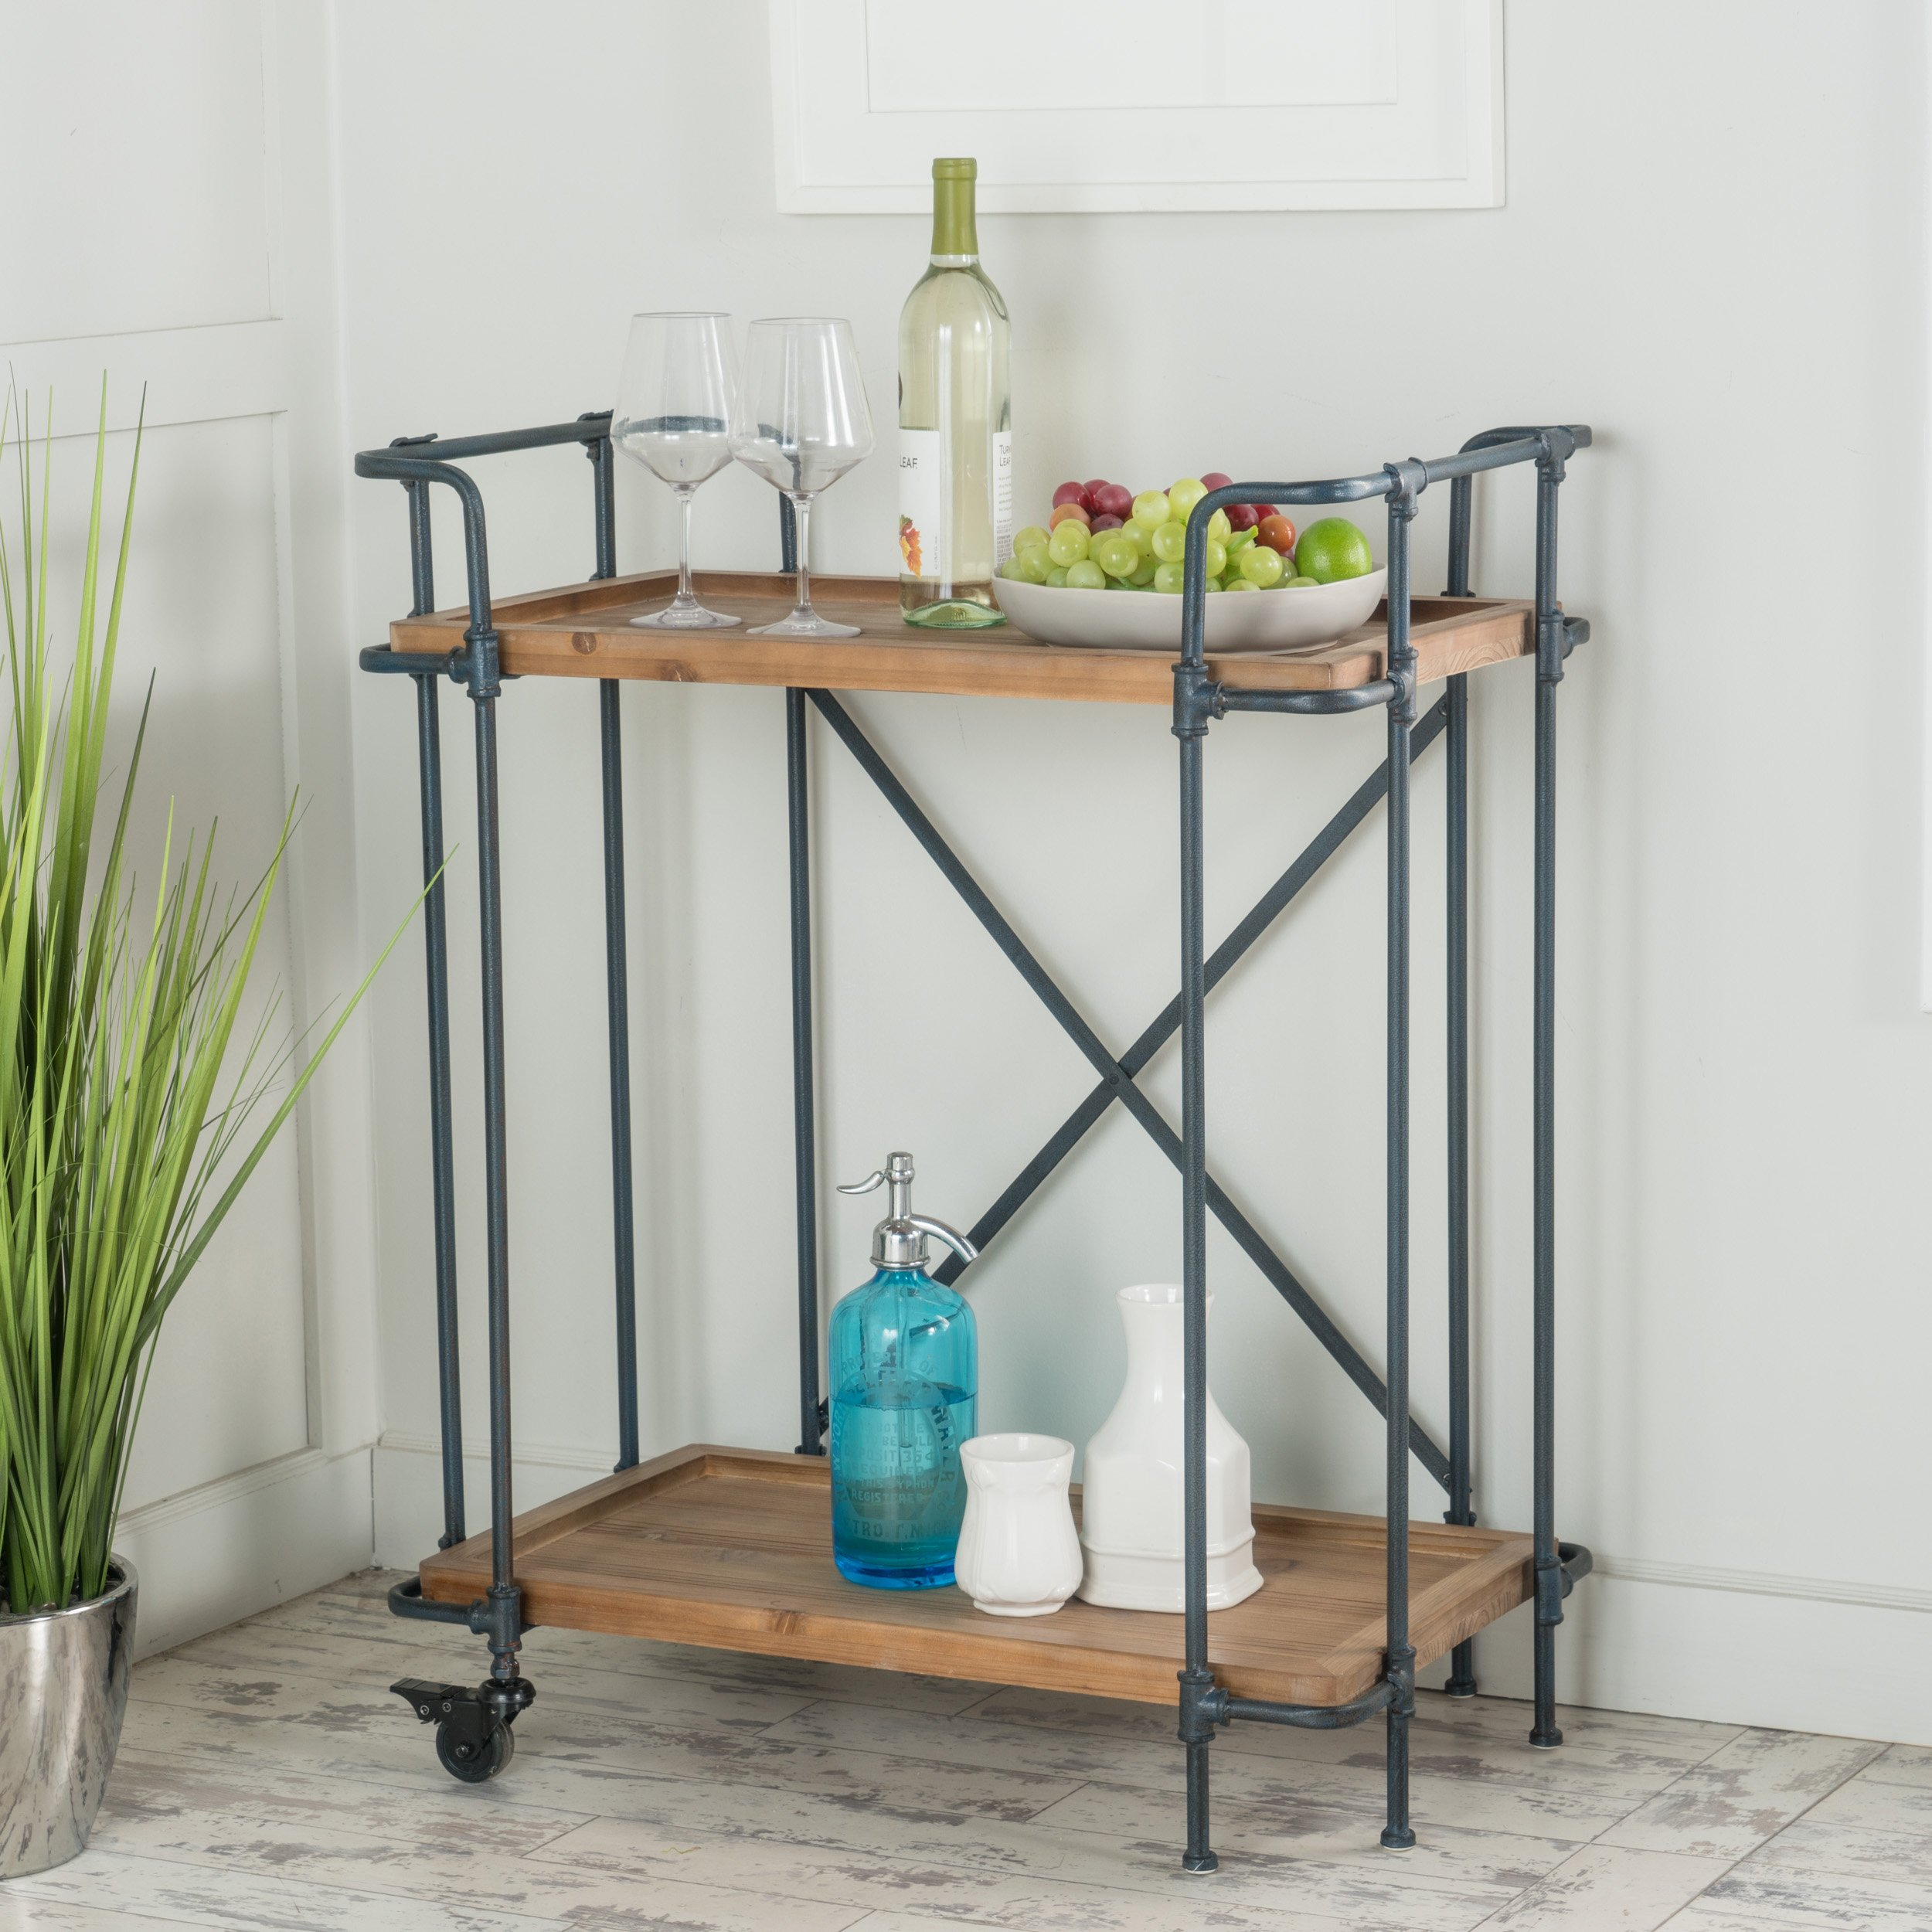 Christopher Knight Home 299842 Kanaan Coffee Cart, Antique